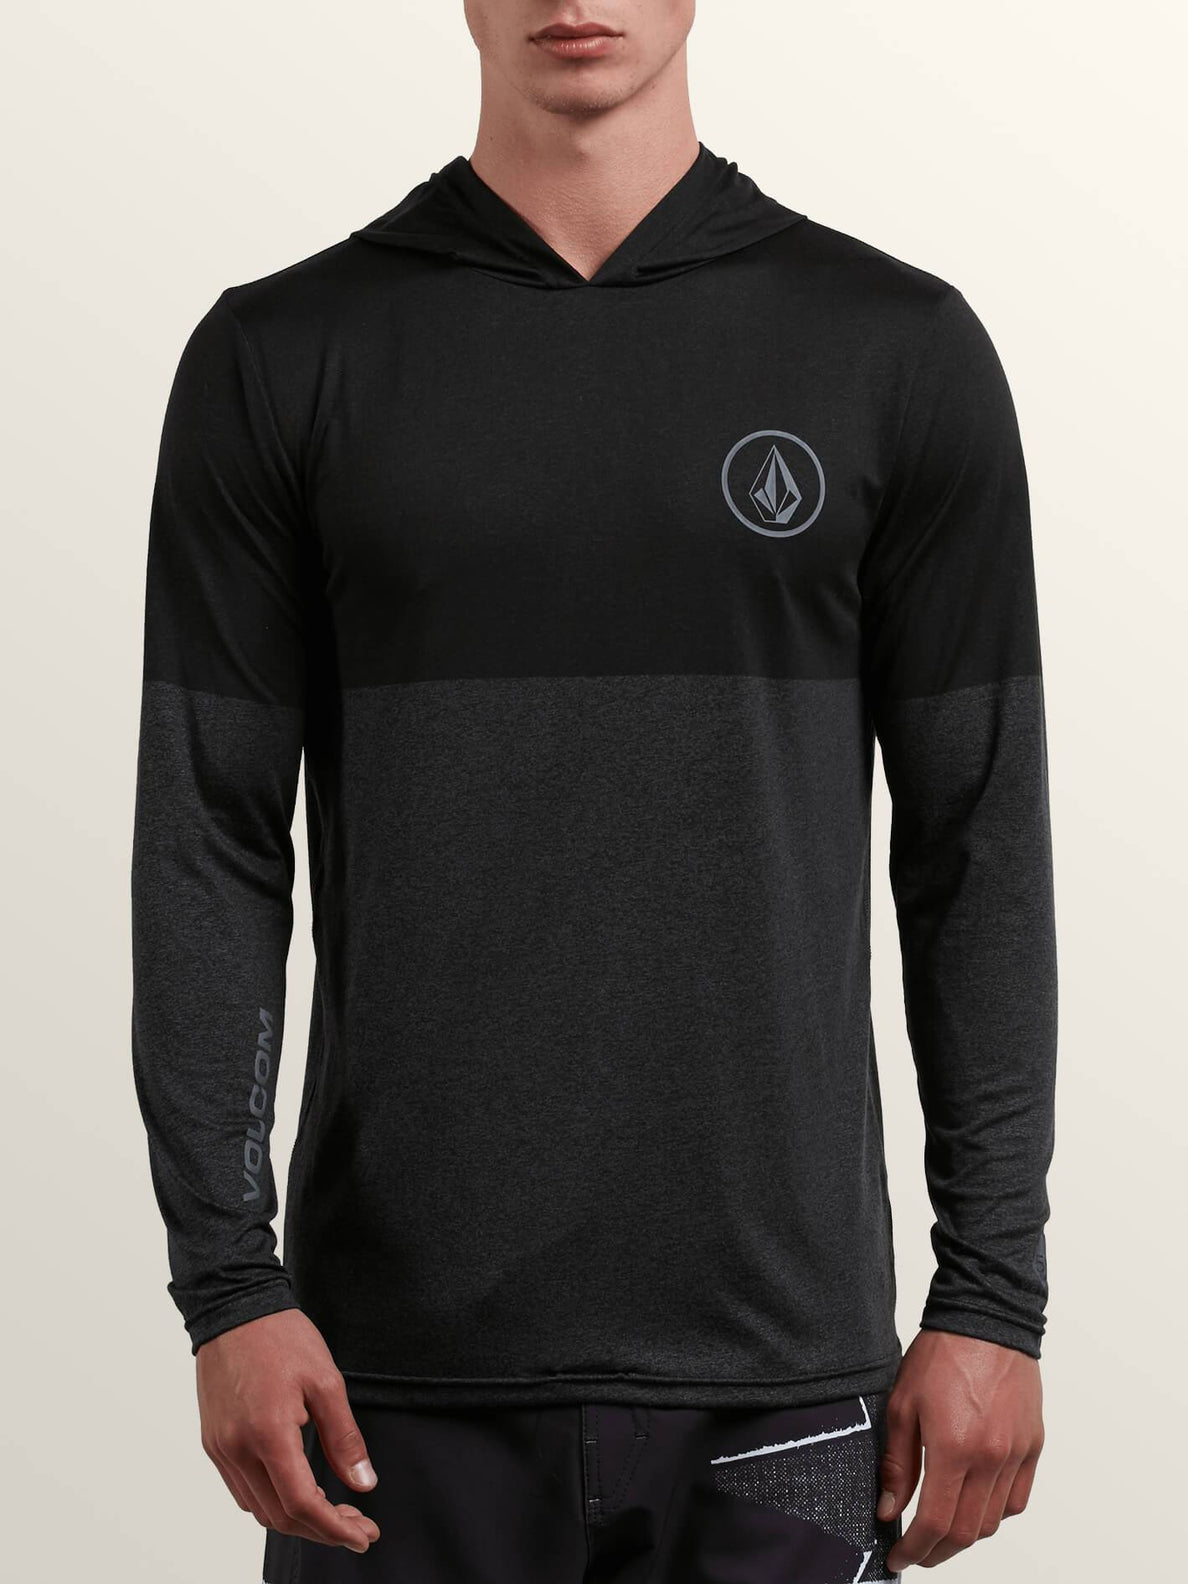 Lido Heather Block Long Sleeve Rashguard In Charcoal Heather, Front View